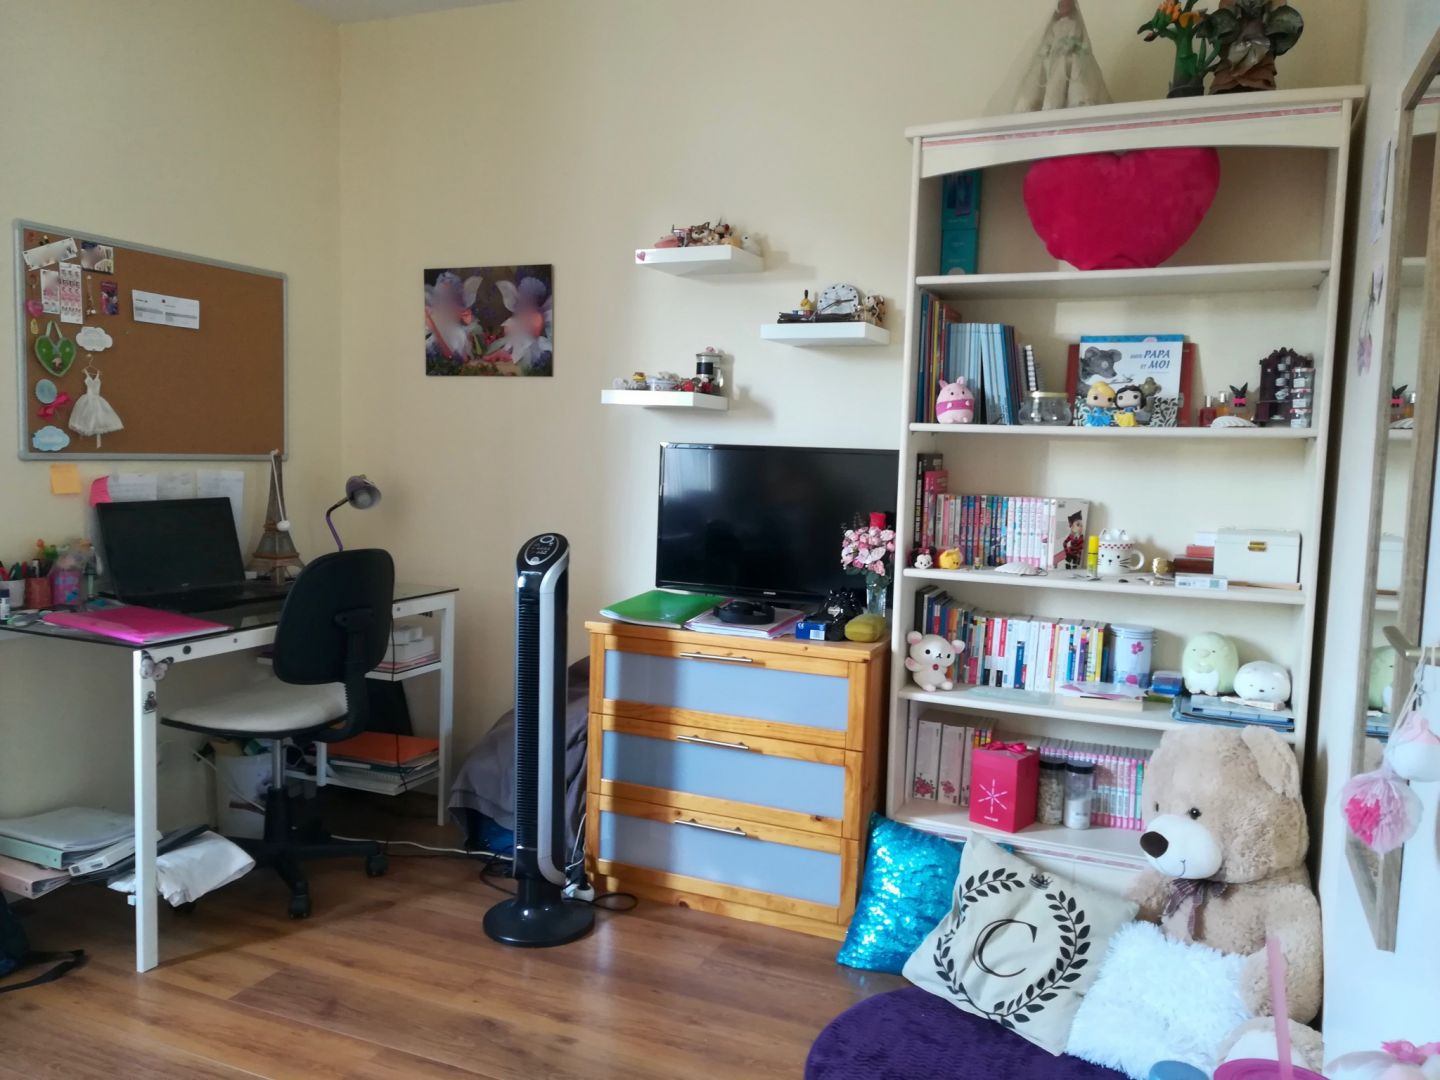 Sale apartment Claye souilly 315000€ - Picture 12